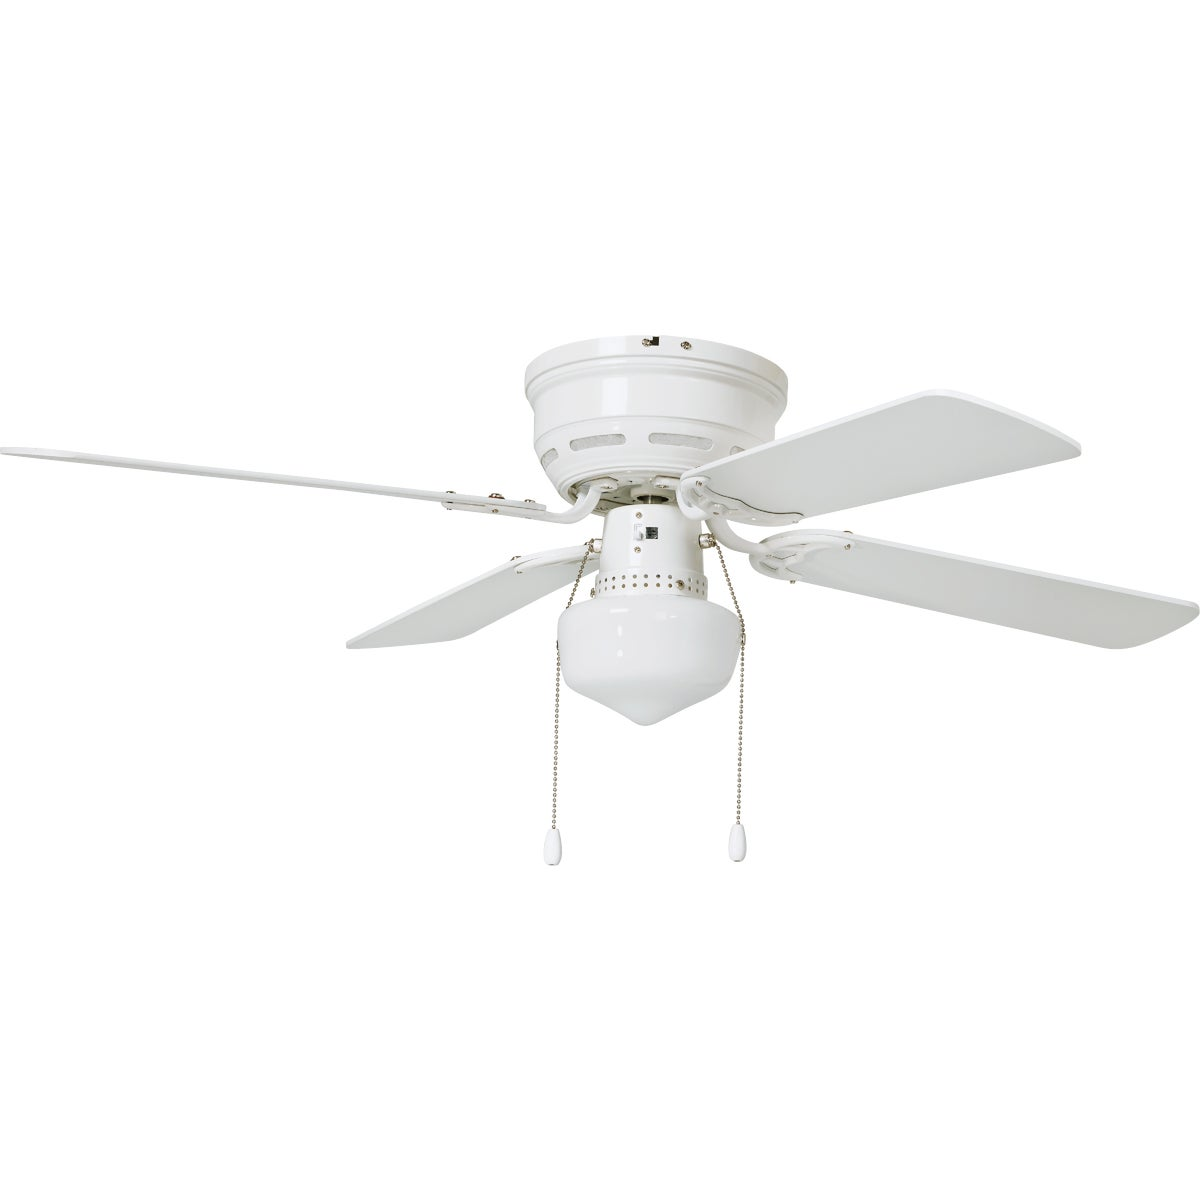 "42""WH W/LITE CEILING FAN - 515604 by Do it Best"